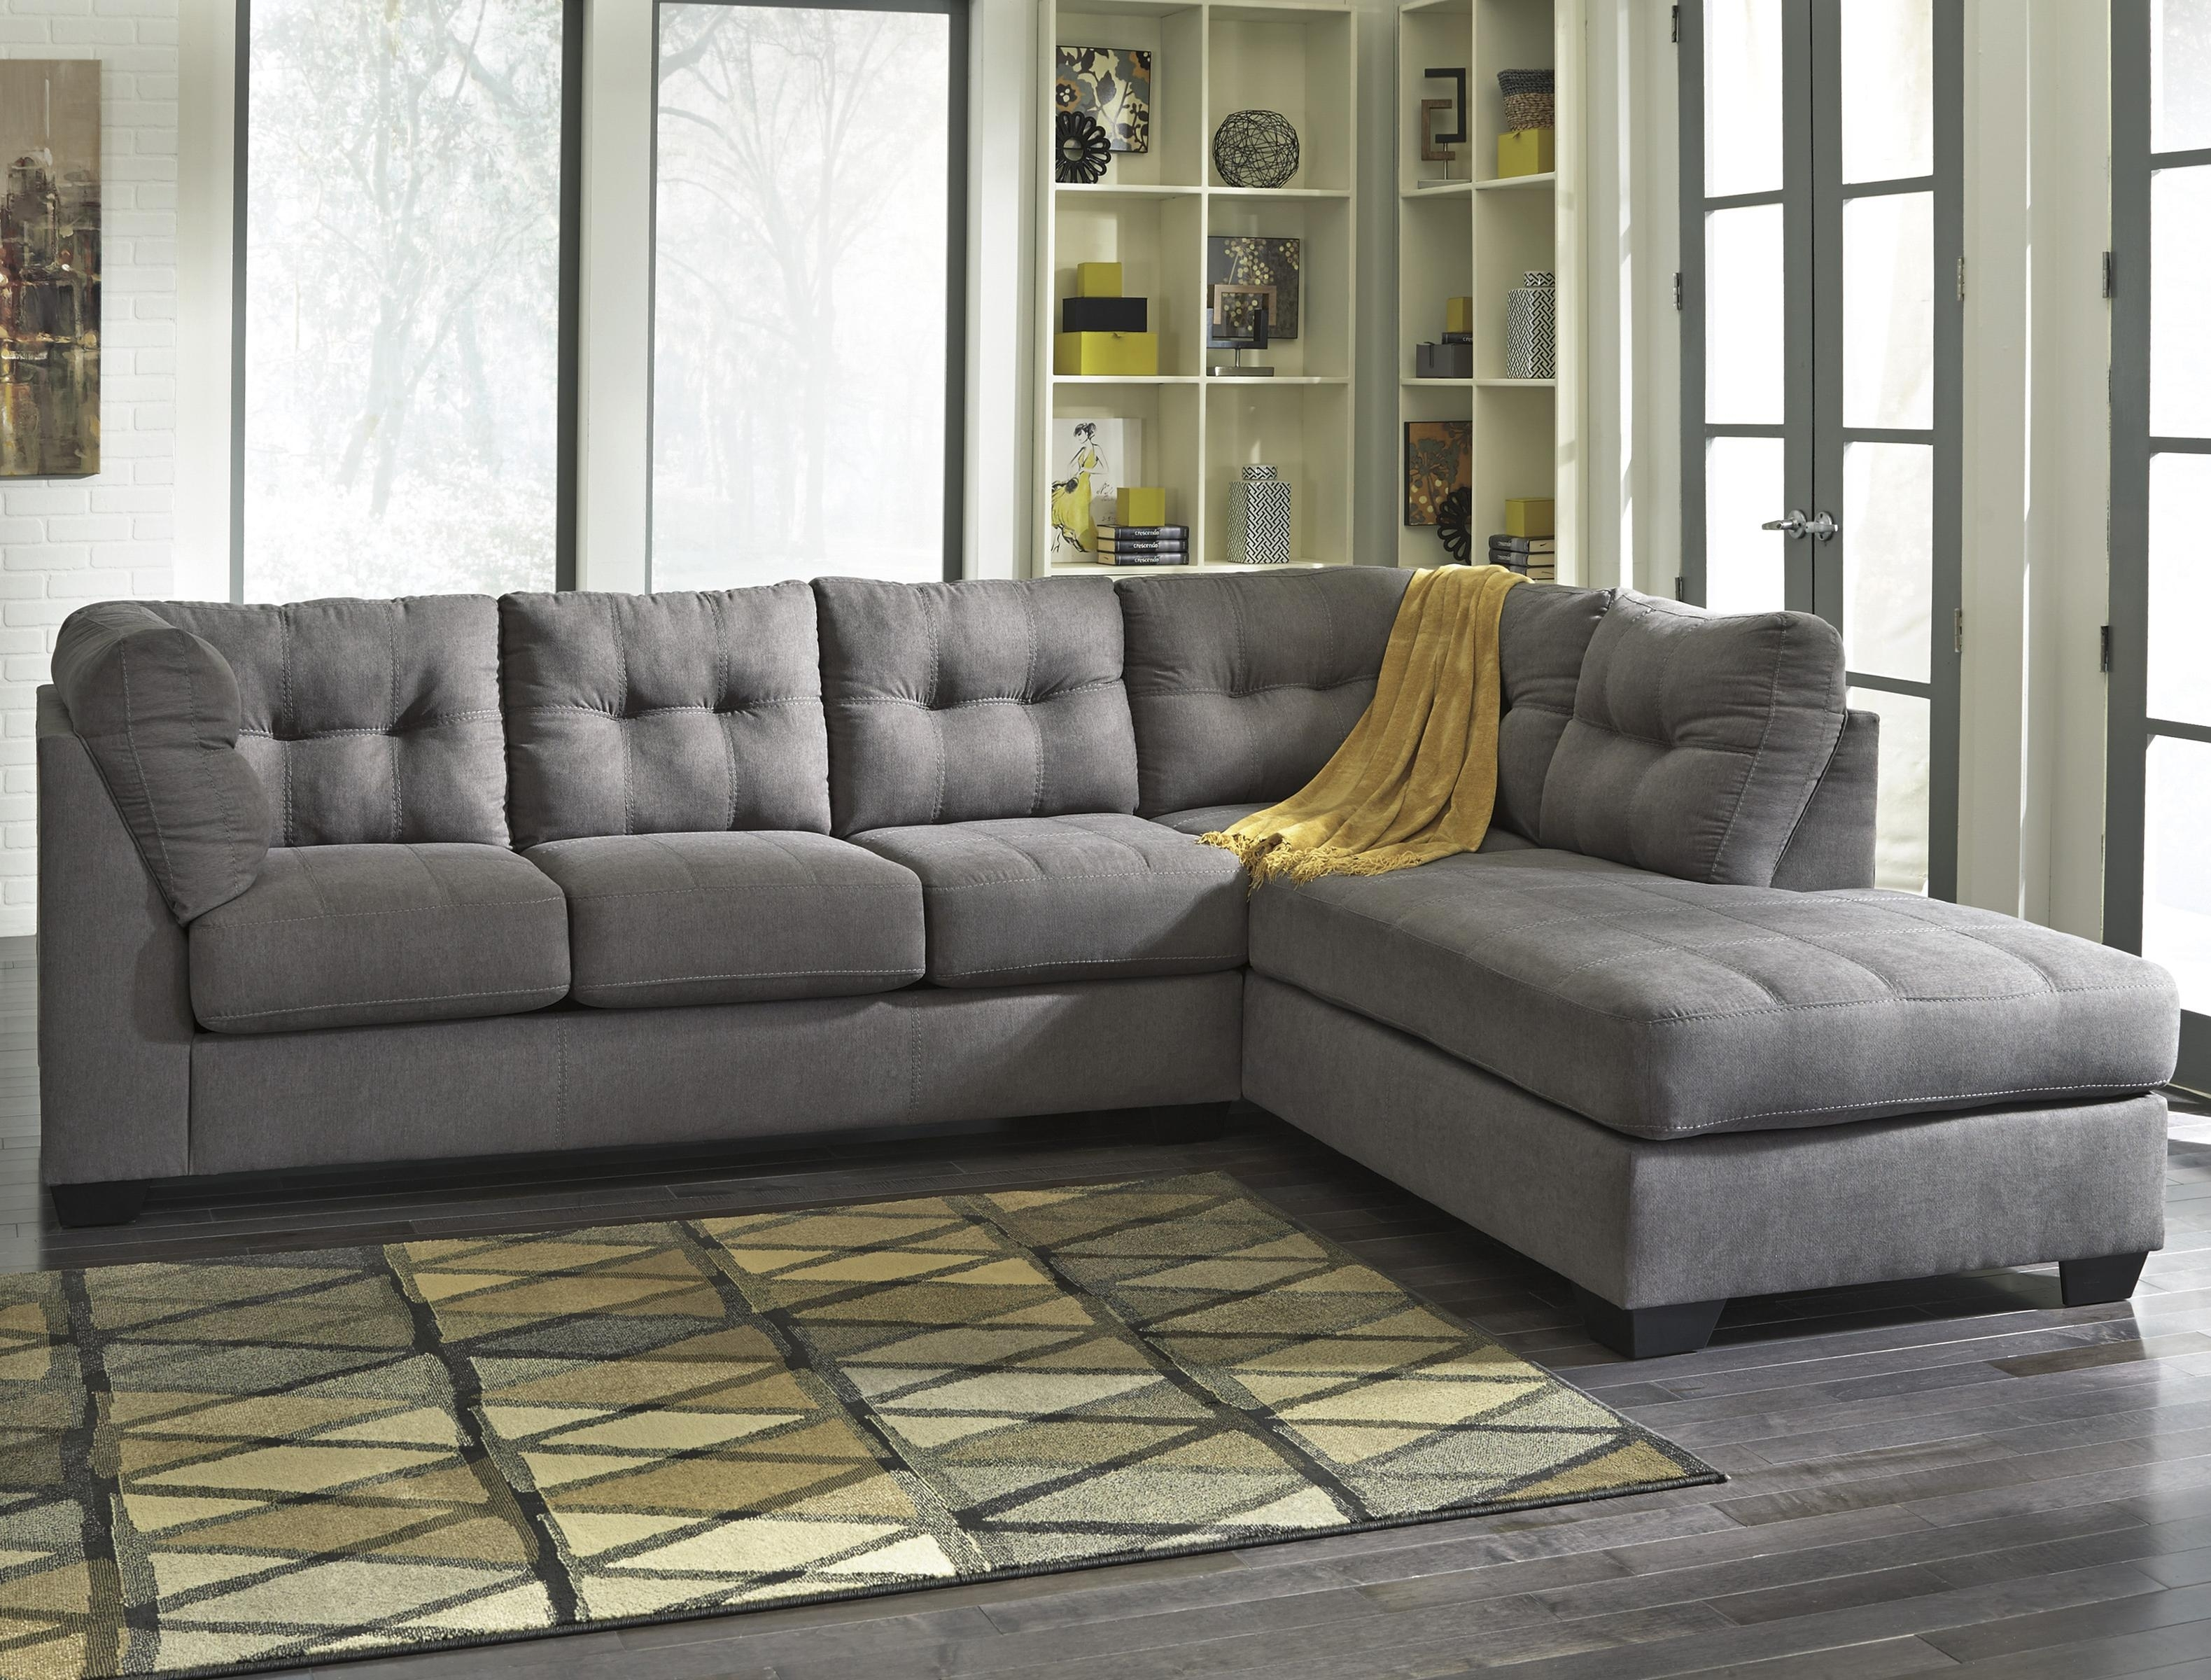 Benchcraft Maier – Charcoal 2 Piece Sectional With Right Chaise Throughout Glamour Ii 3 Piece Sectionals (Image 4 of 25)